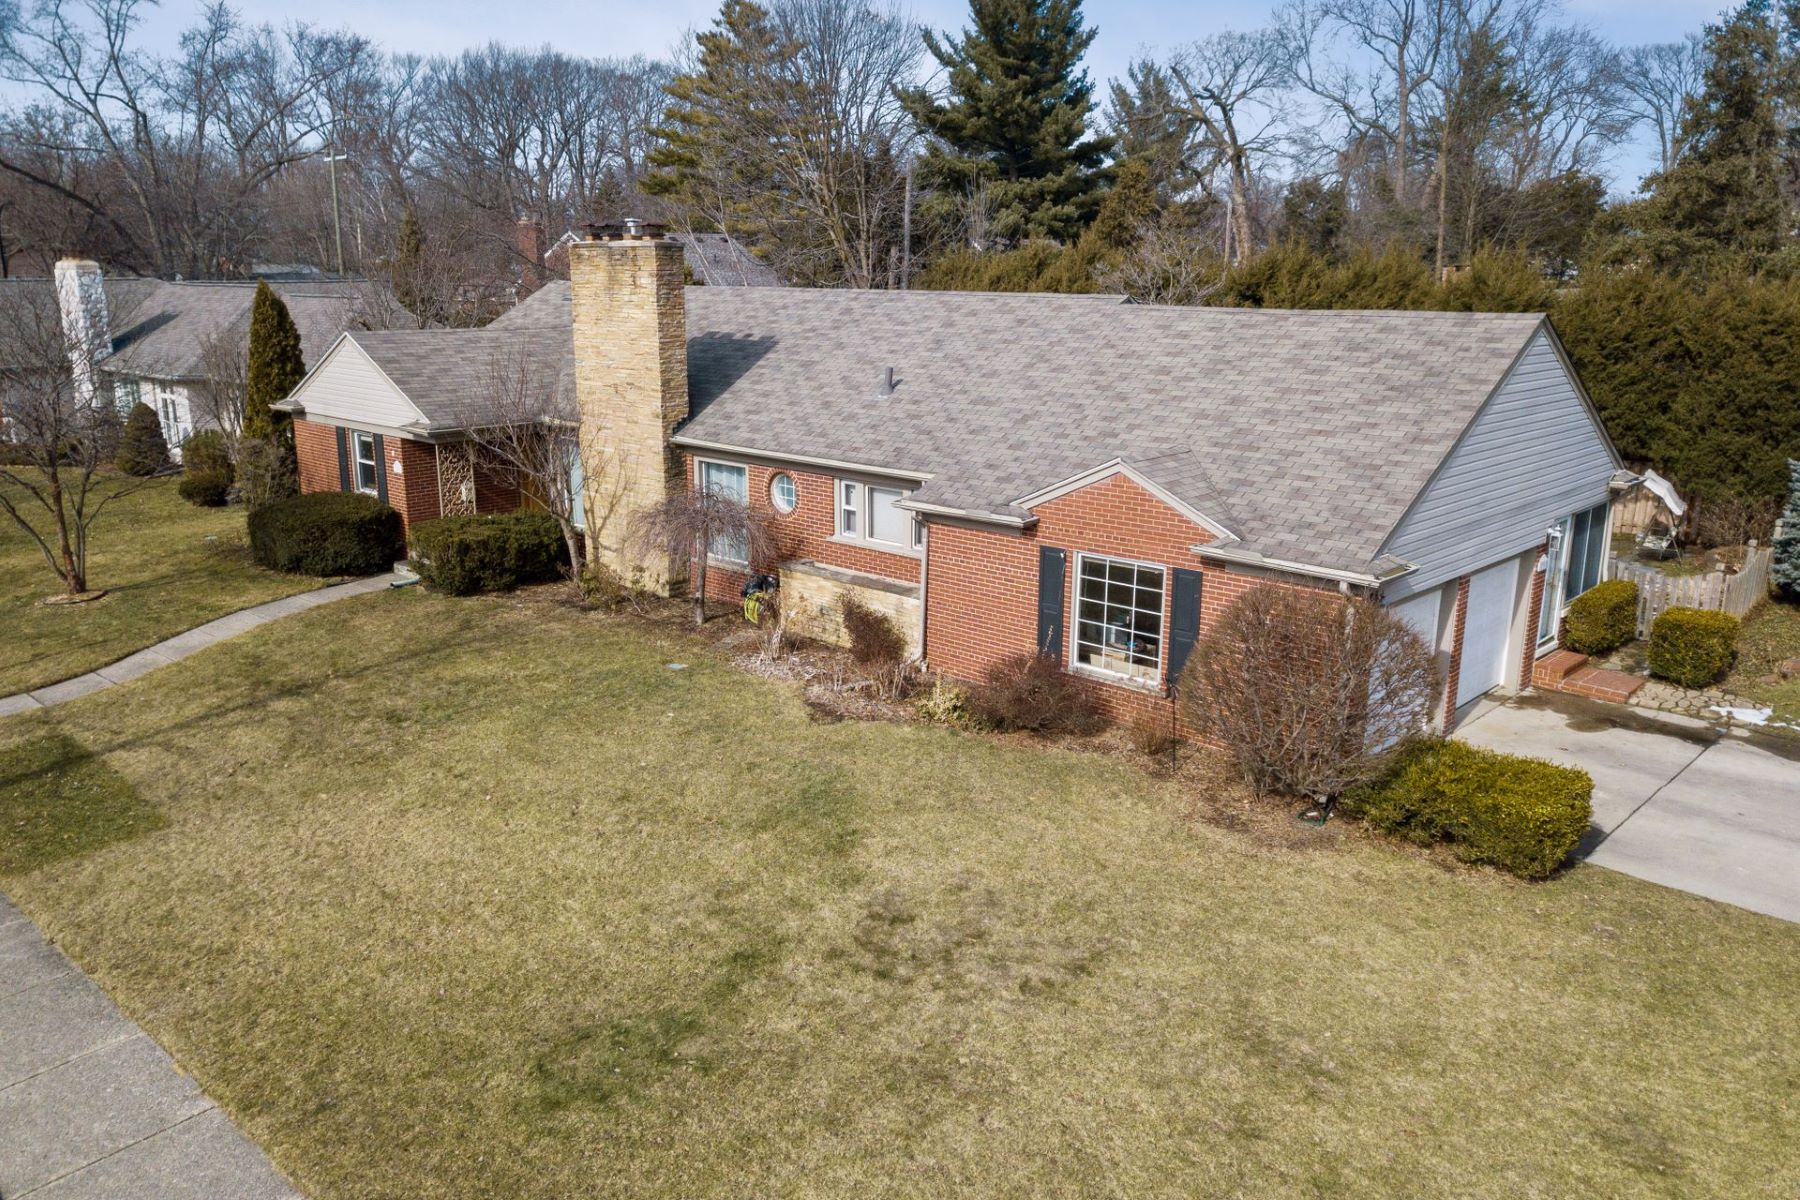 Single Family Homes for Sale at Grosse Pointe Farms 290 Stephens Rd. Grosse Pointe Farms, Michigan 48236 United States